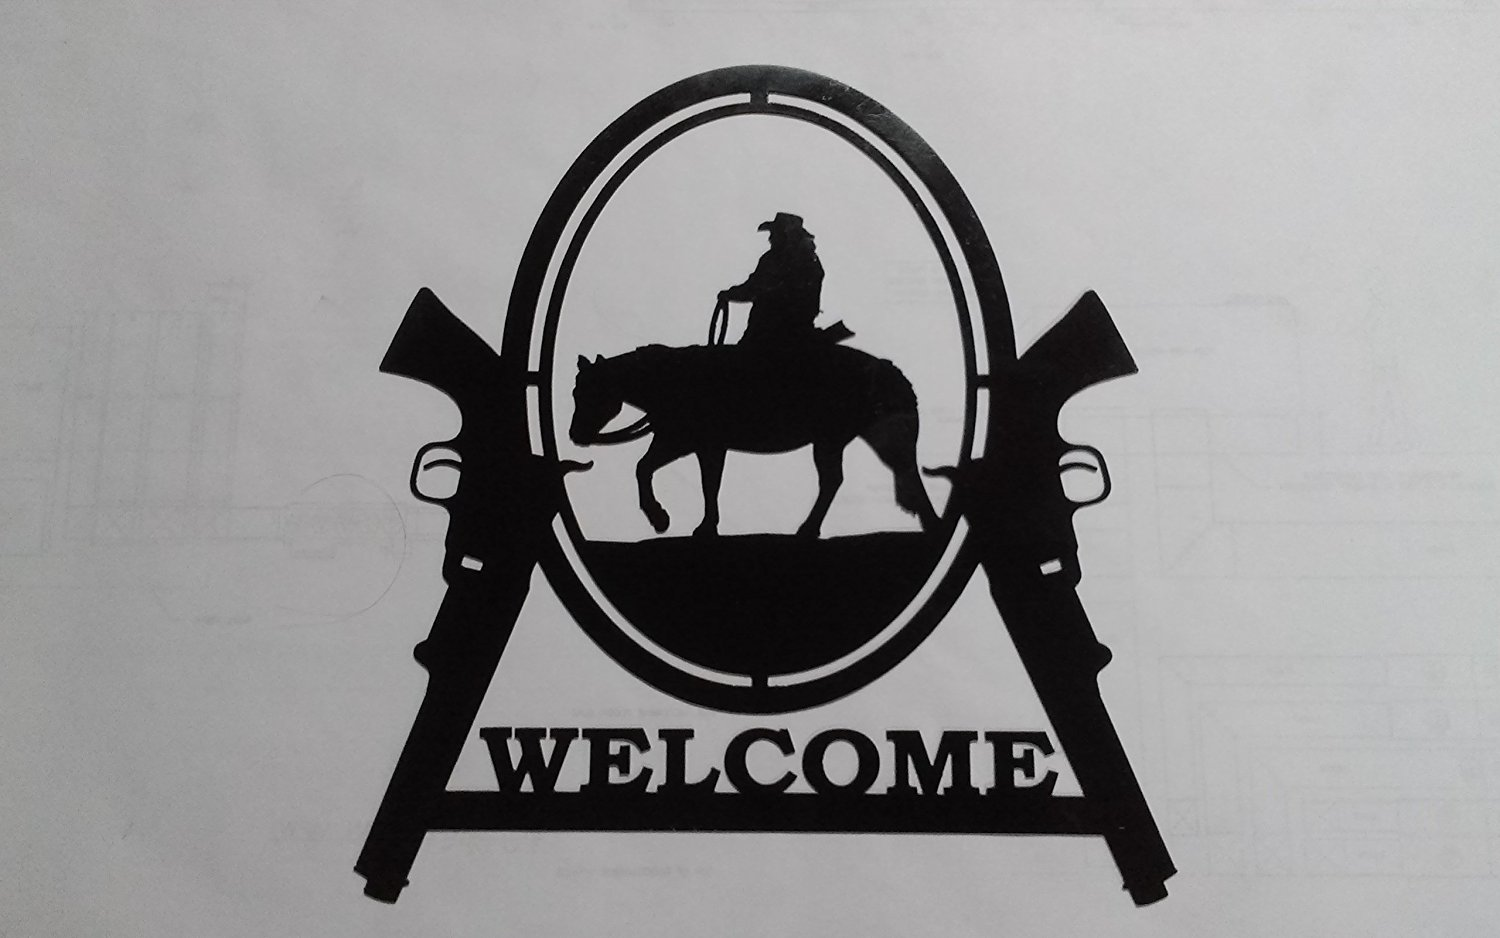 Cowboy on Horse with Two Guns Welcome Sign Metal Wall Art Home Decor